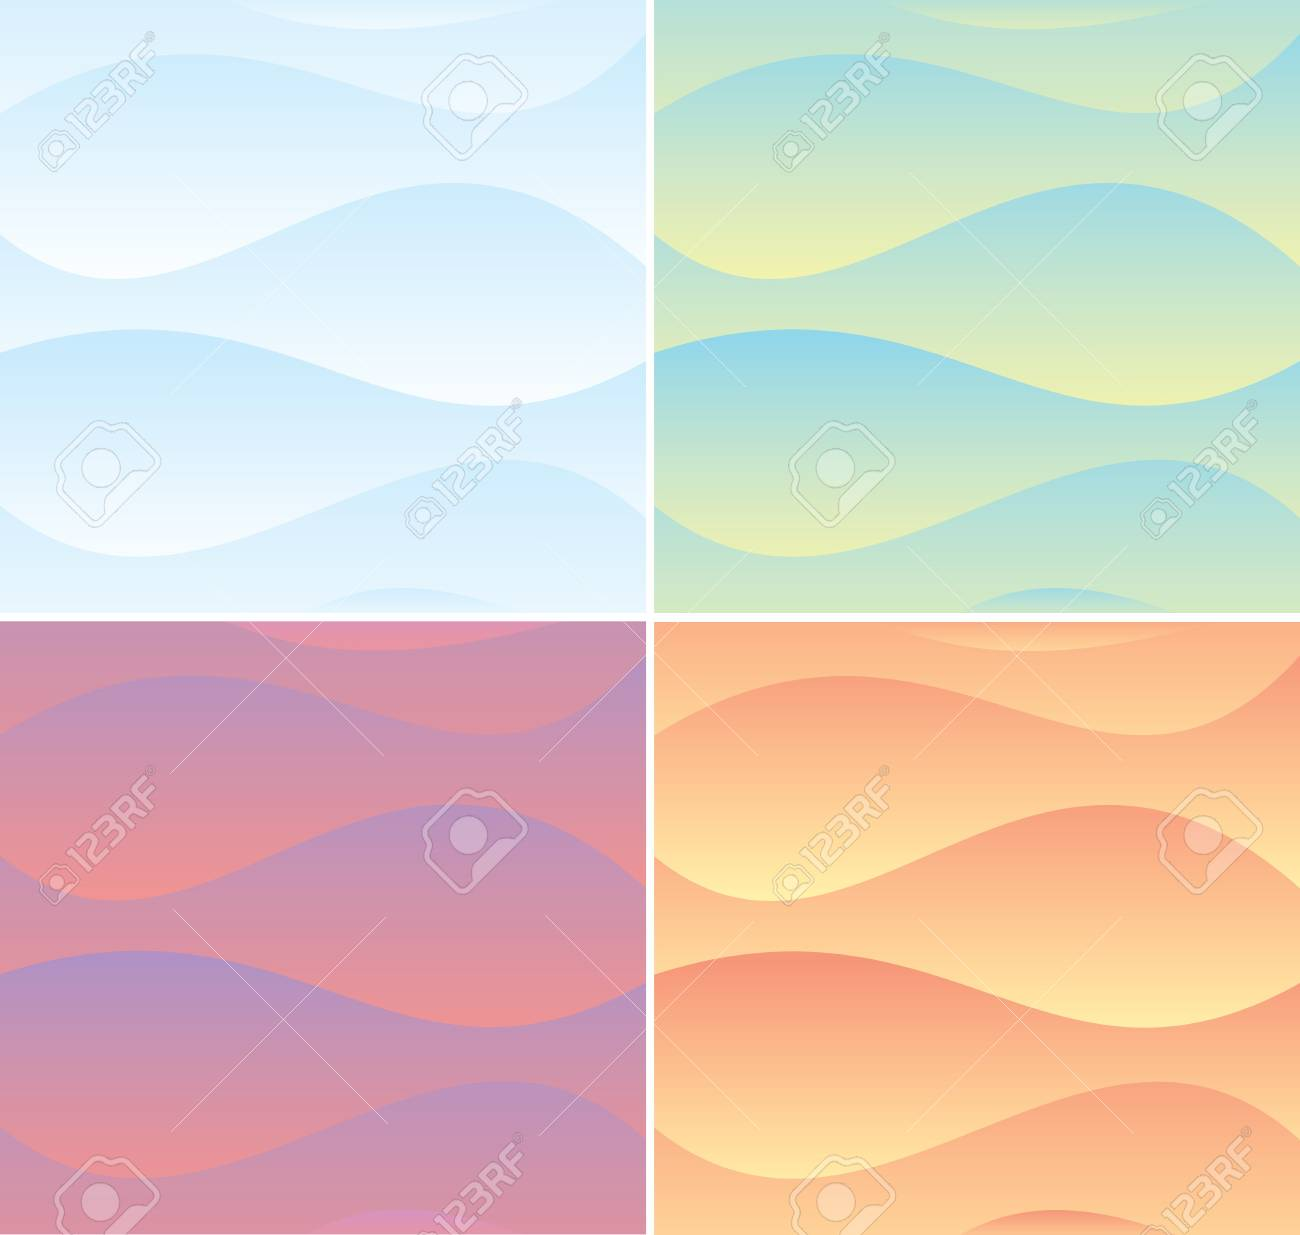 Set of Soft Waving Backgrounds  Vector Graphics Stock Vector - 17919173